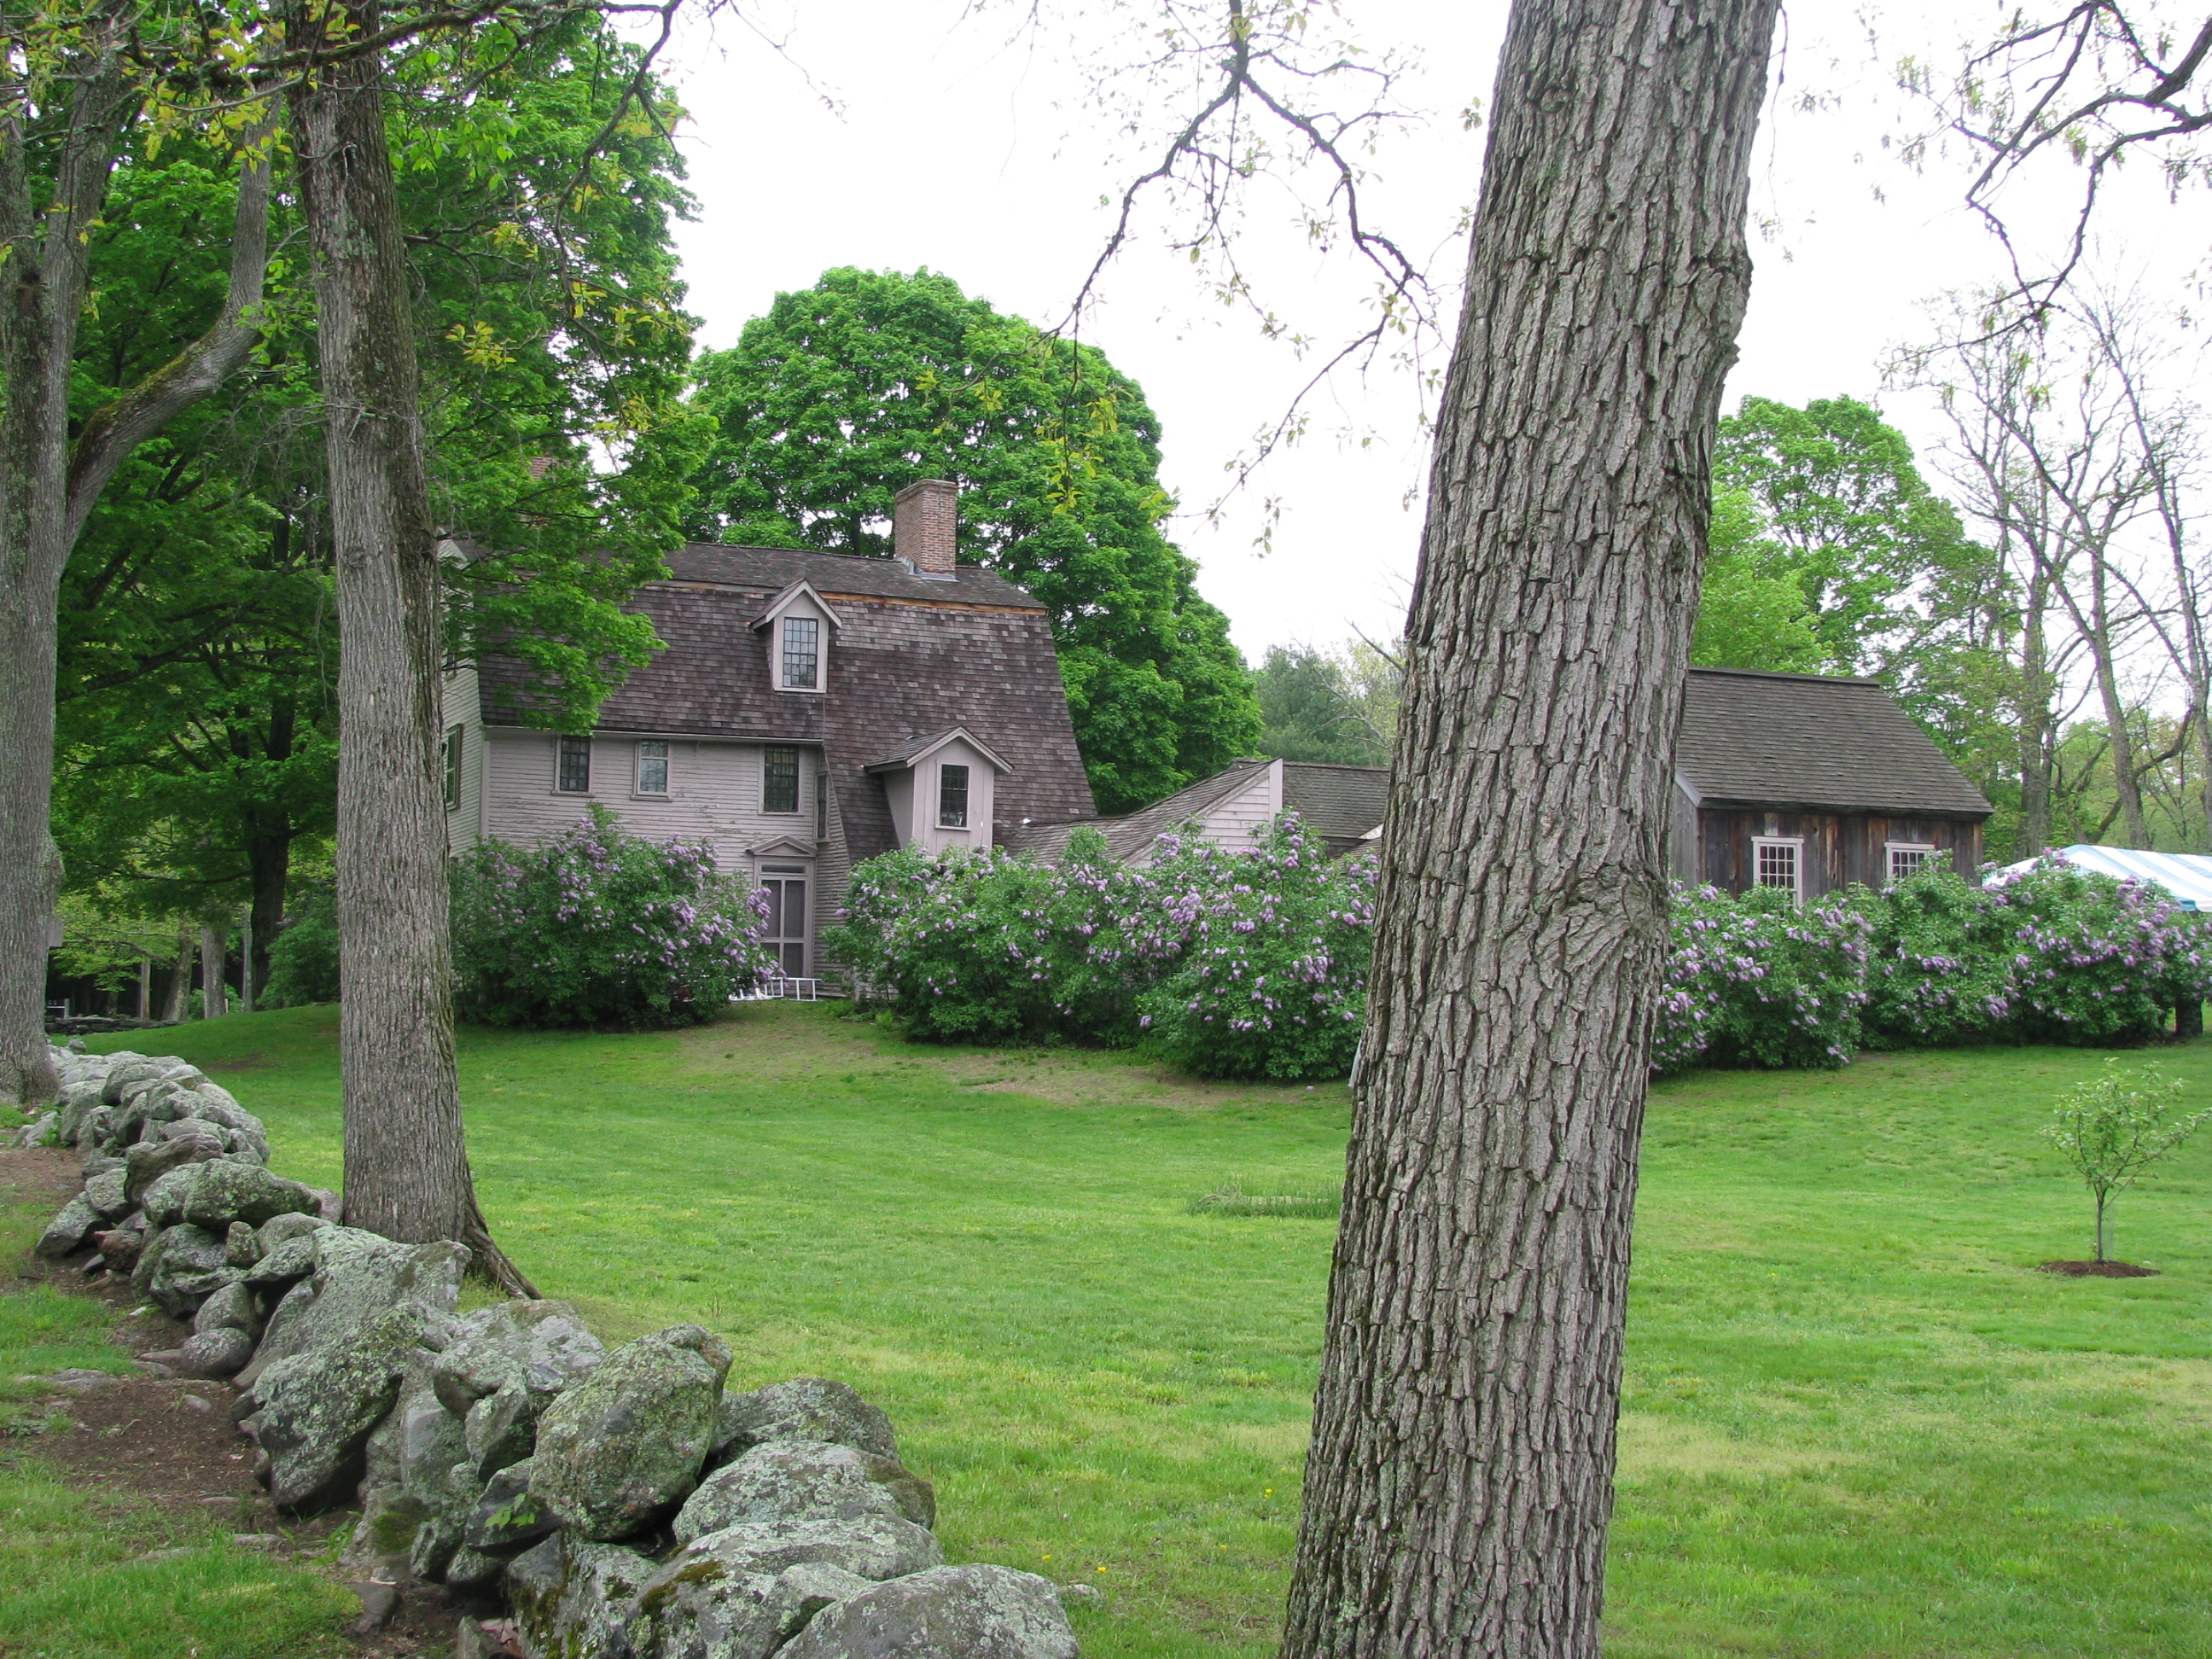 """where i lived and what i lived for henry david thoreau essay Entry v """"where i lived, and what i lived for"""" by henry david thoreau genre: classic essay 1 thoreau declares his higher purpose as going off into the woods (deliberately) in search to."""